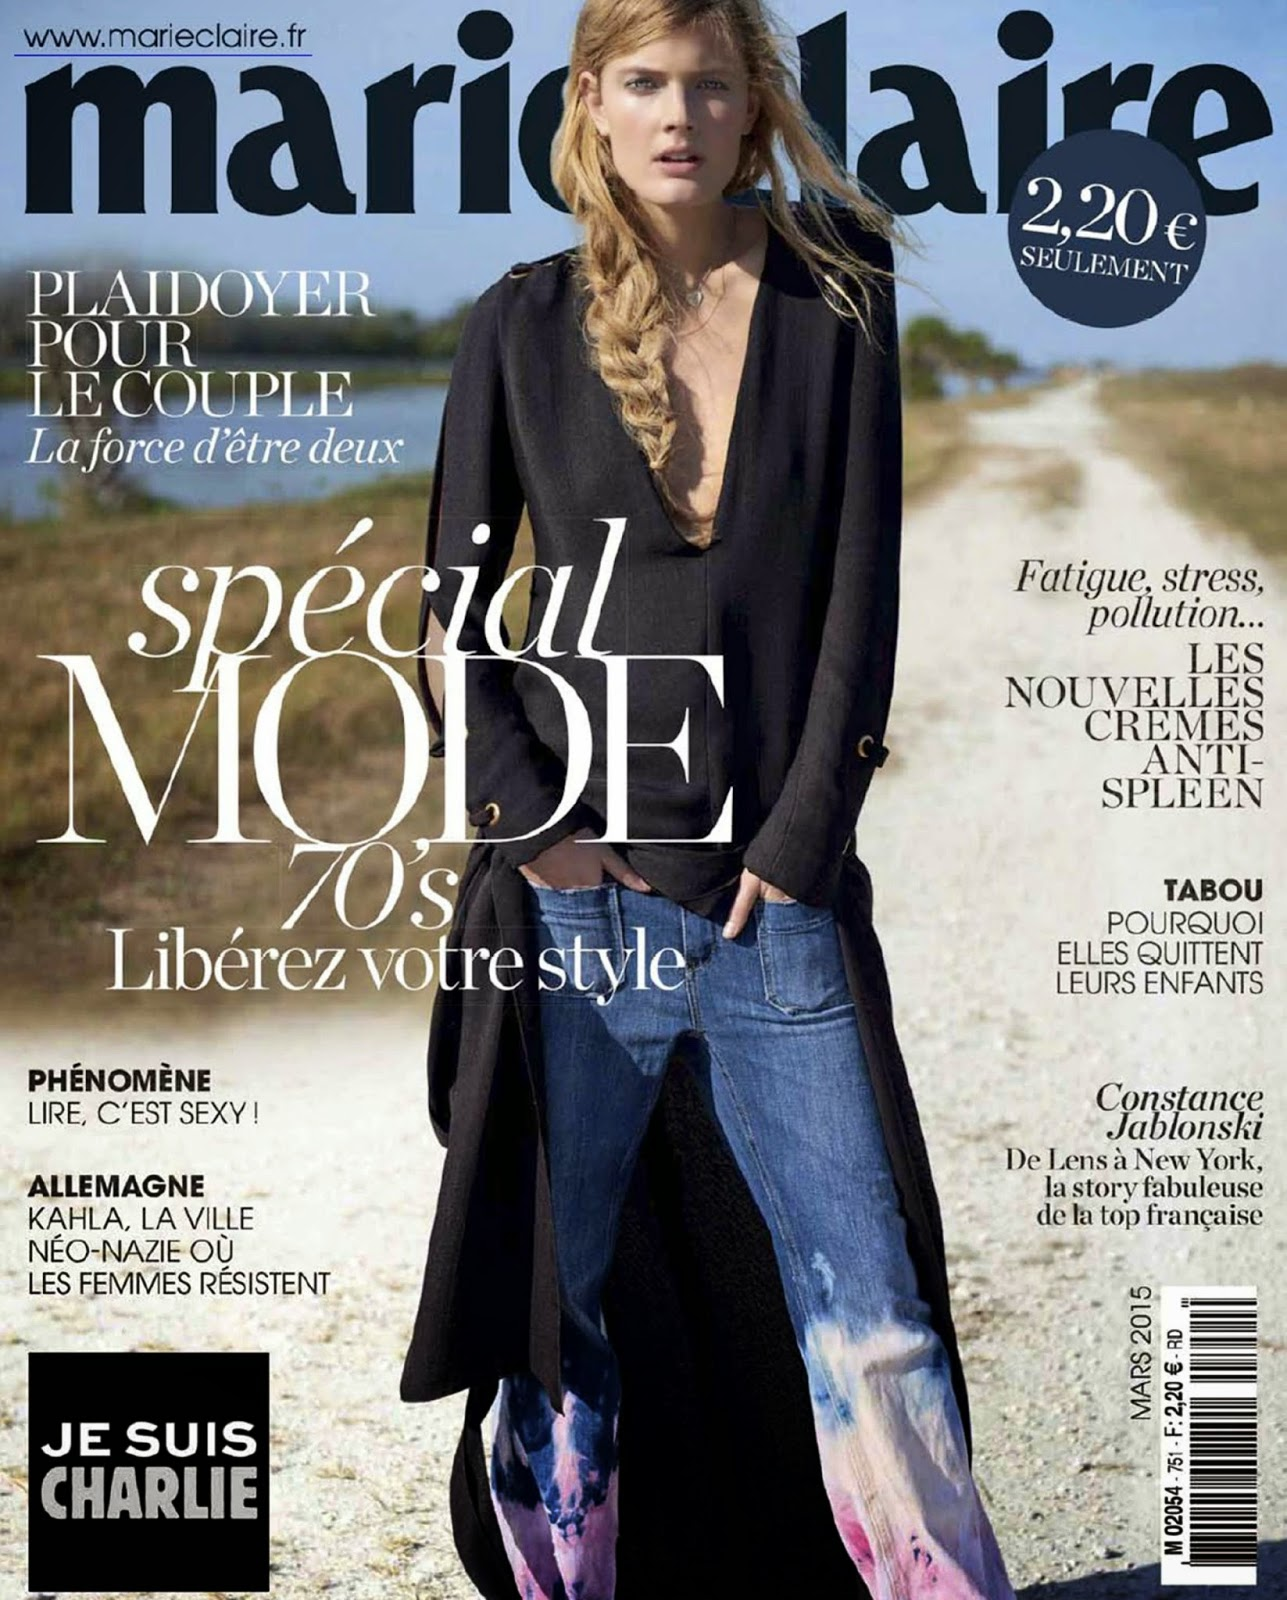 Fashion Model: Constance Jablonski for Marie Claire France